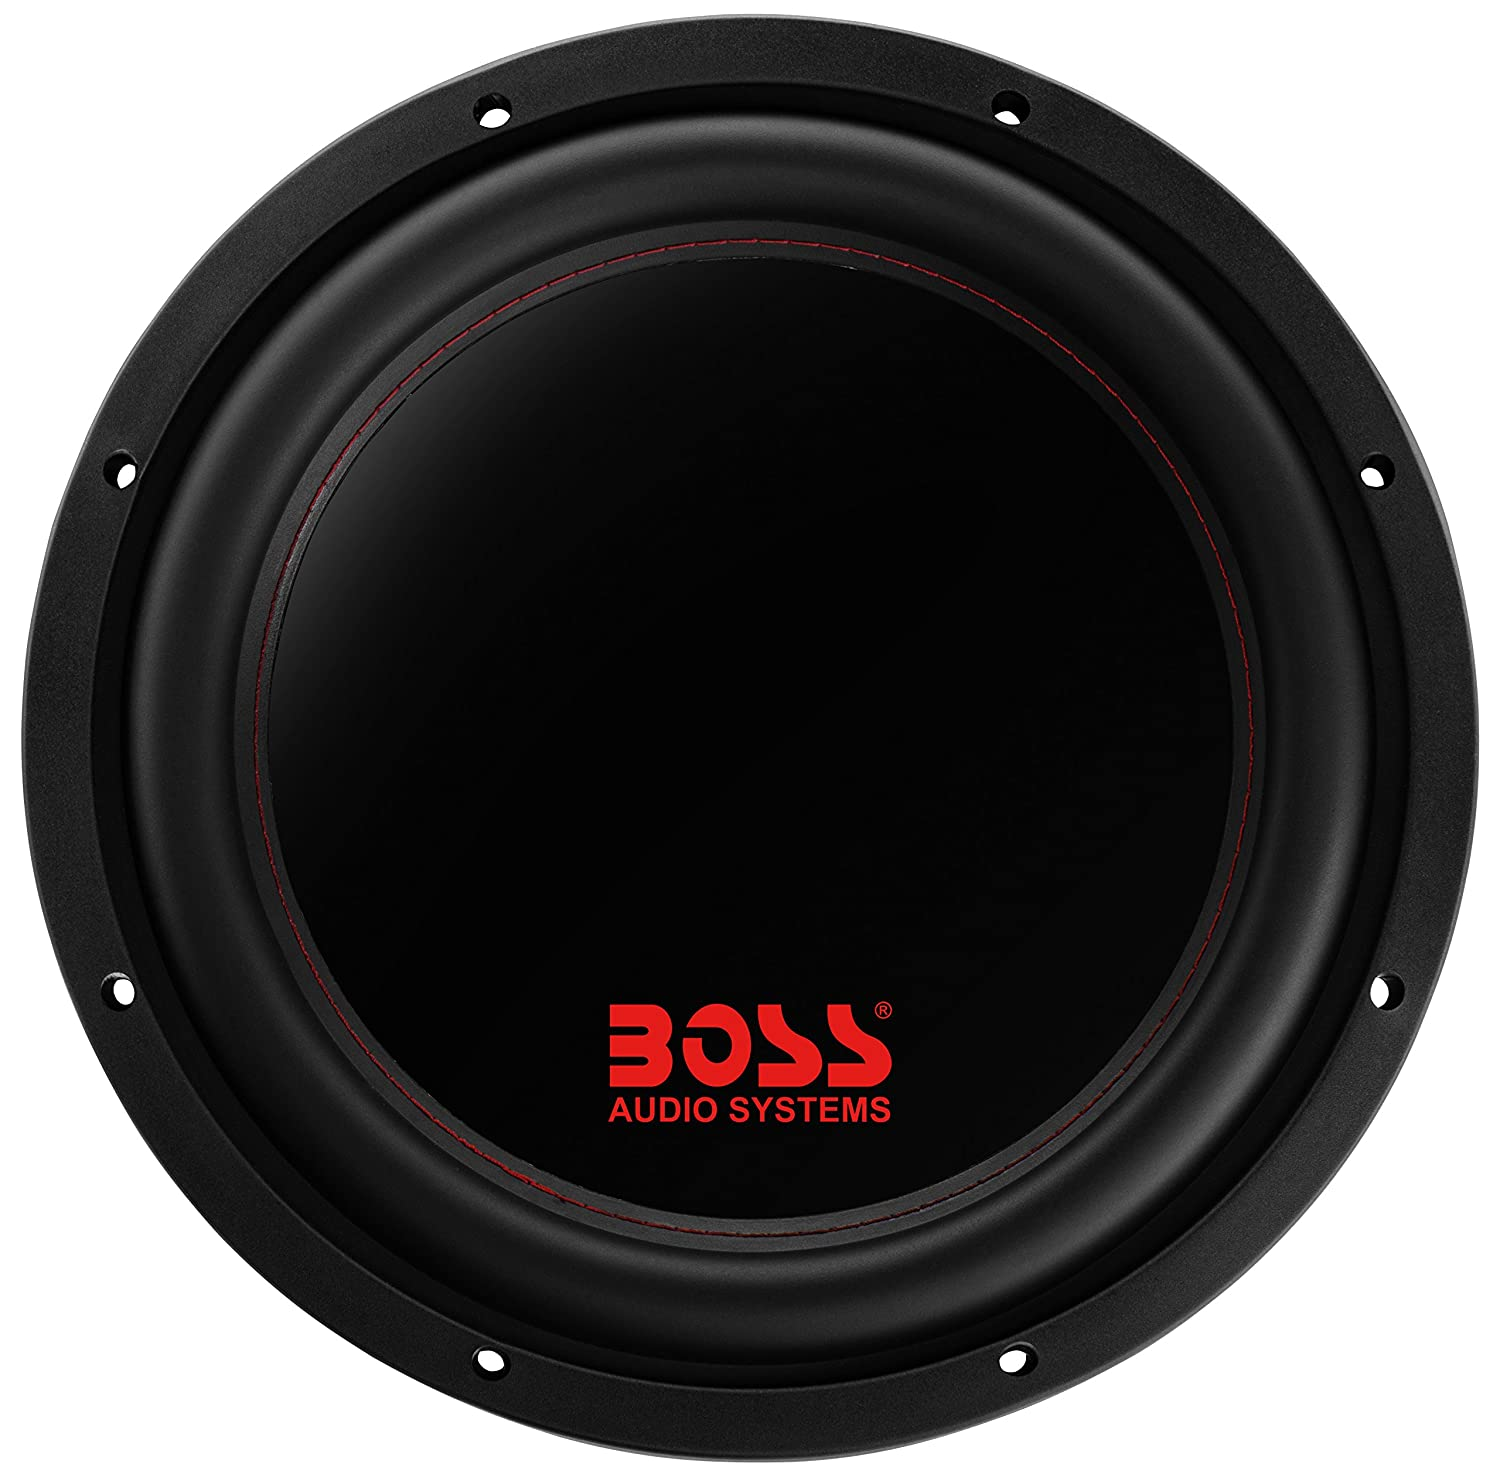 Boss Audio P129dc 2600 Watt 12 Inch Dual 4 Ohm Voice Re Connectseries Amplifier Wiring Kit 4gauge 2channel 5000w Coil Car Subwoofer Cell Phones Accessories